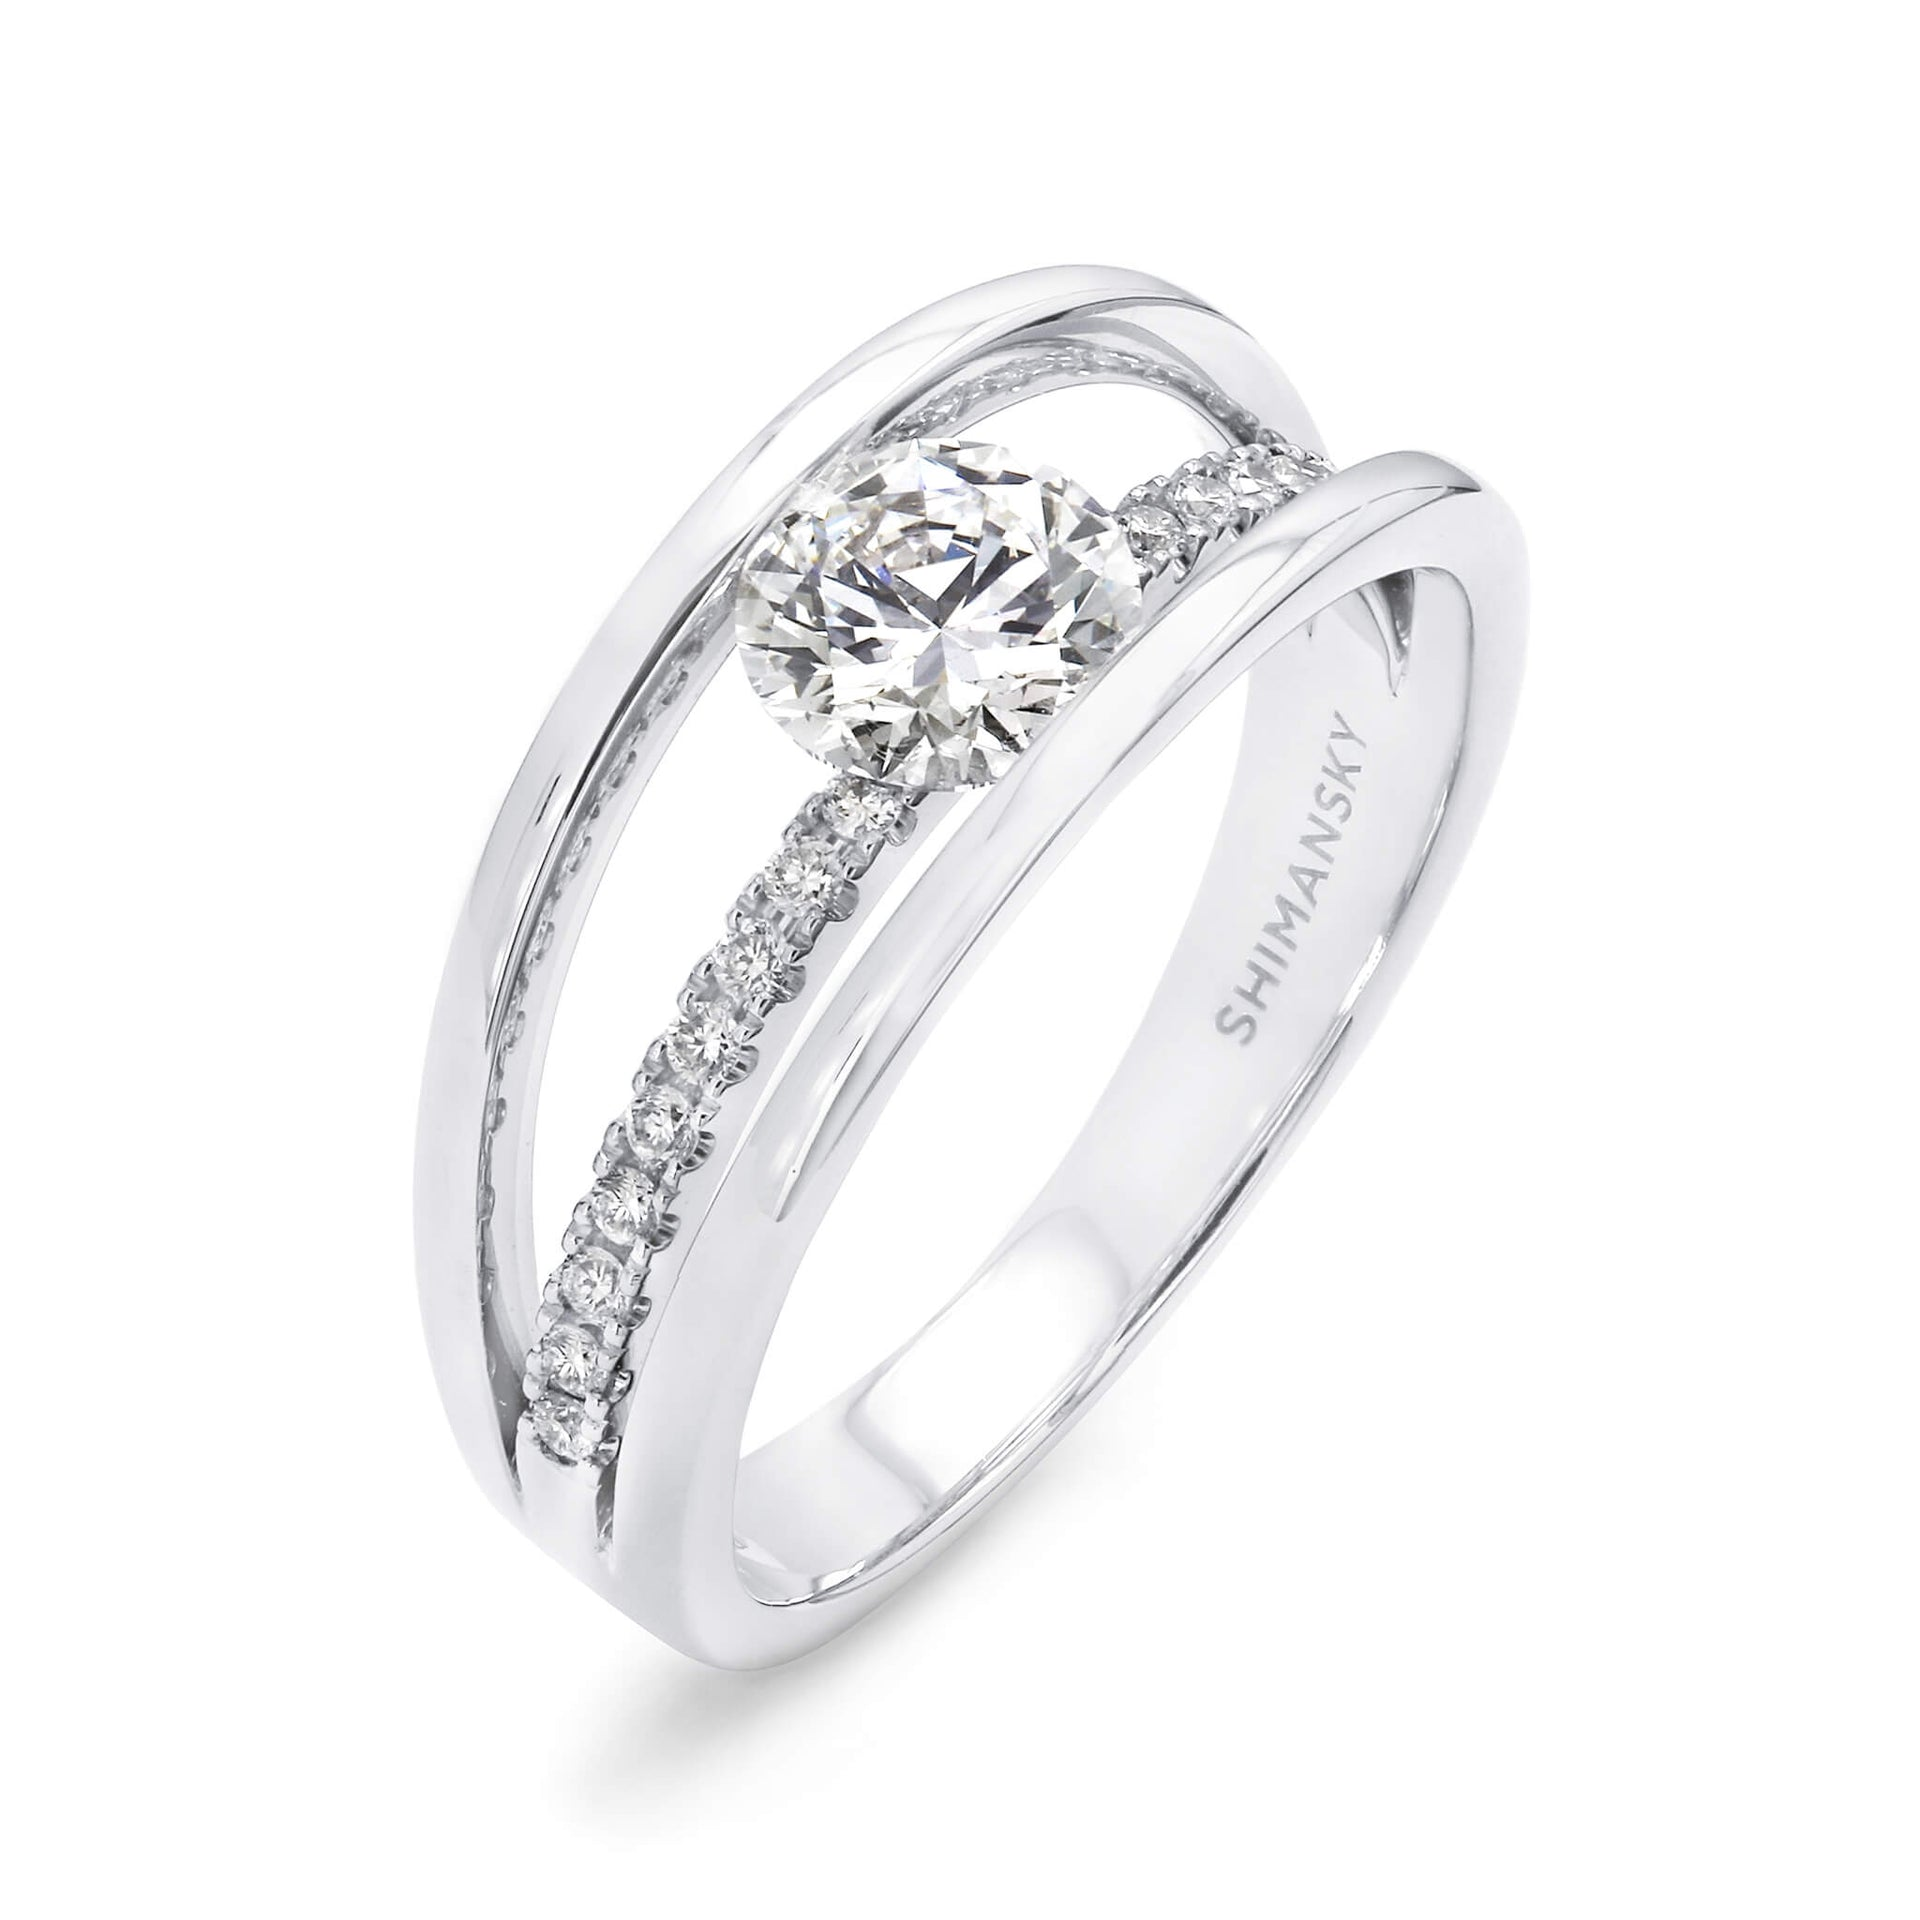 0.84 Carat Evolym Micro Set Diamond Engagement Ring in Platinum 3D View